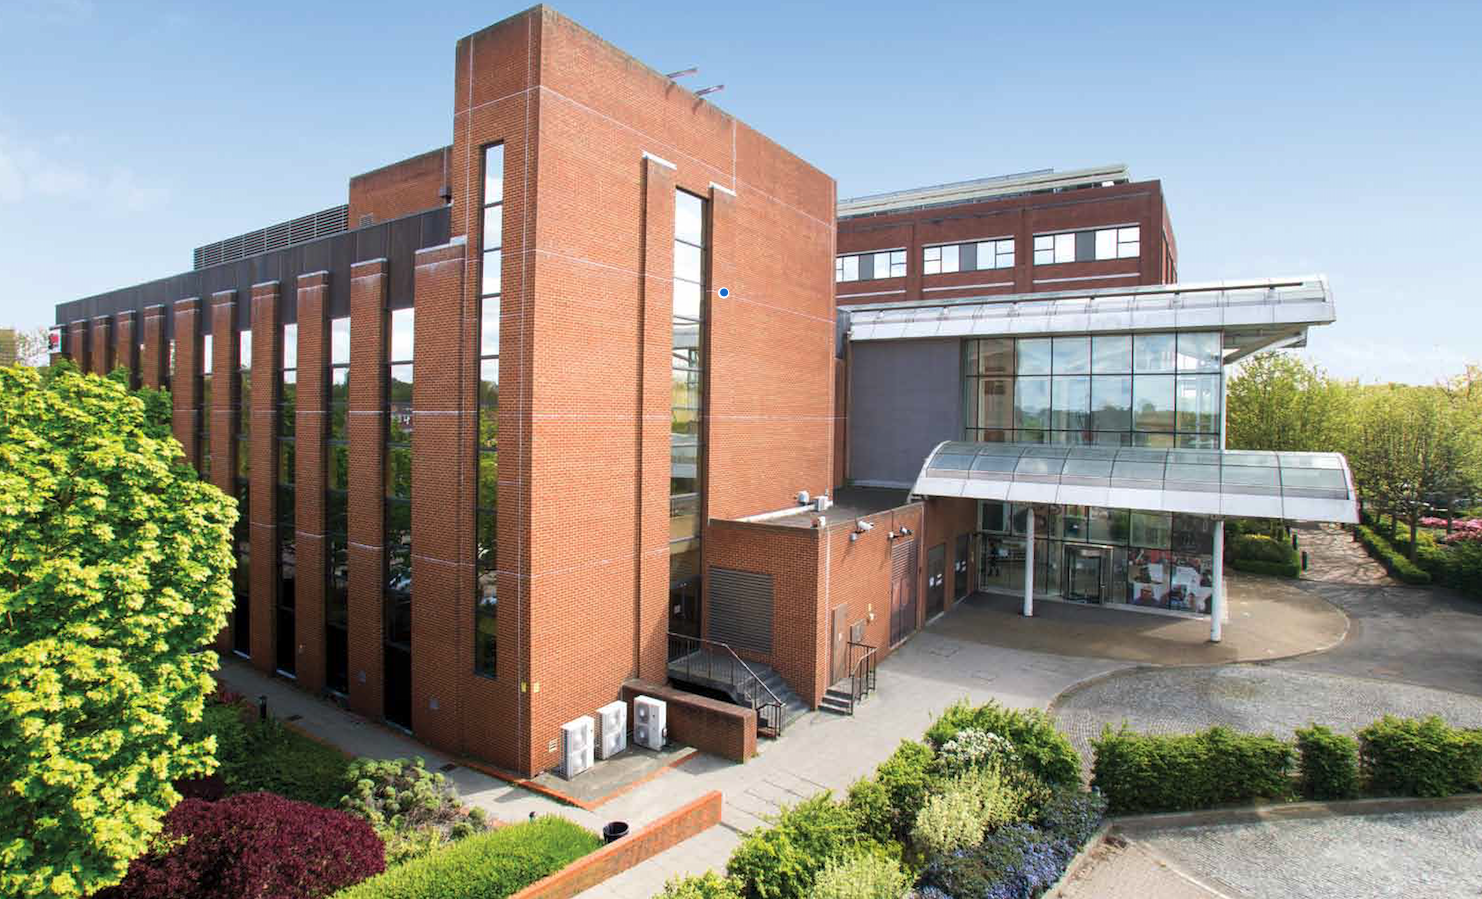 OFFICE - INVESTMENT - ACQUISITION    G2, Greenford Square, London   97,027 sq ft West London Office Investment   Client:  Brydell Partners   Vendor:  Threadneedle   Price:  Confidential